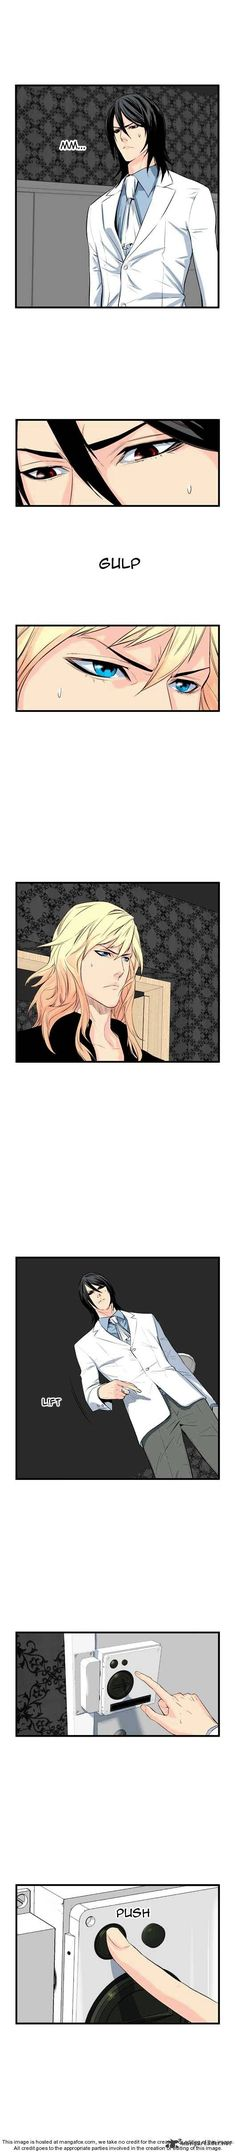 Noblesse ch.46